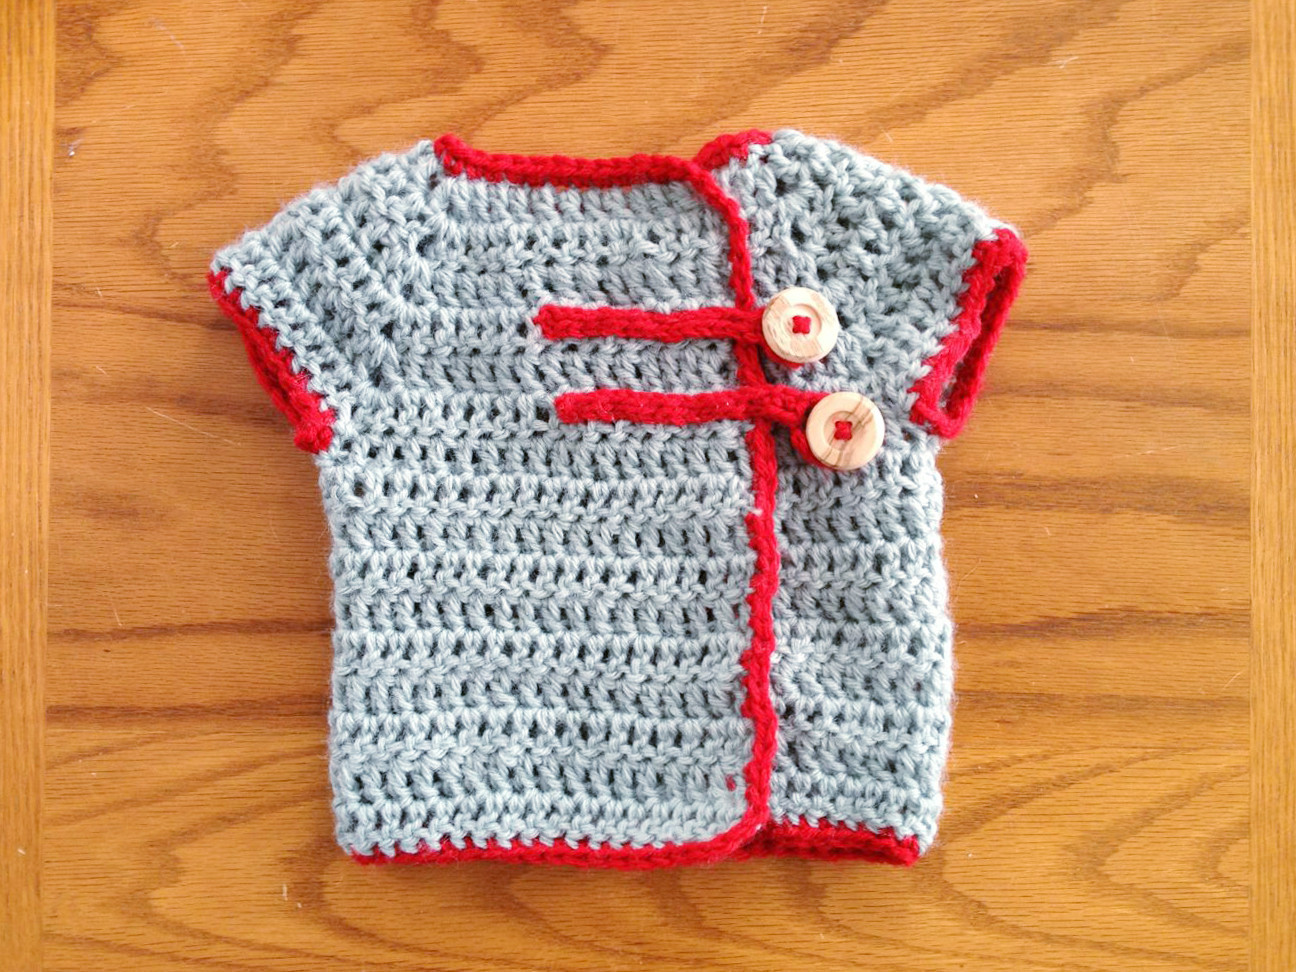 Awesome How to Make Crochet Sweater for Baby Crochet Baby Sweater for Beginners Of Wonderful 41 Pictures Crochet Baby Sweater for Beginners